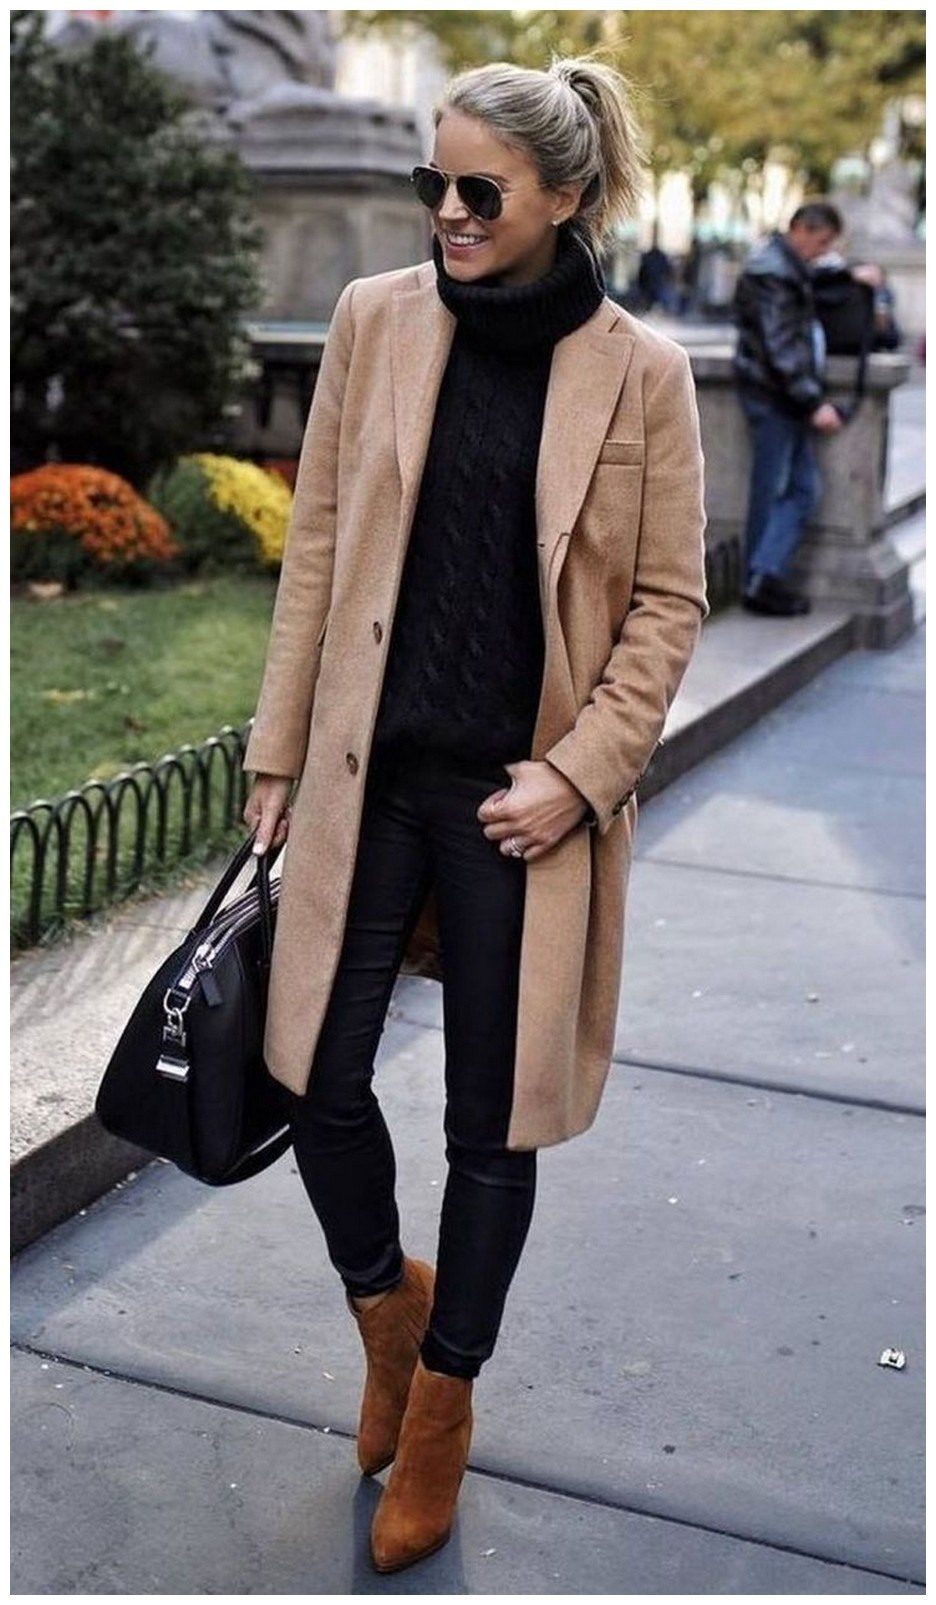 45+ trending winter outfits to copy right now 24